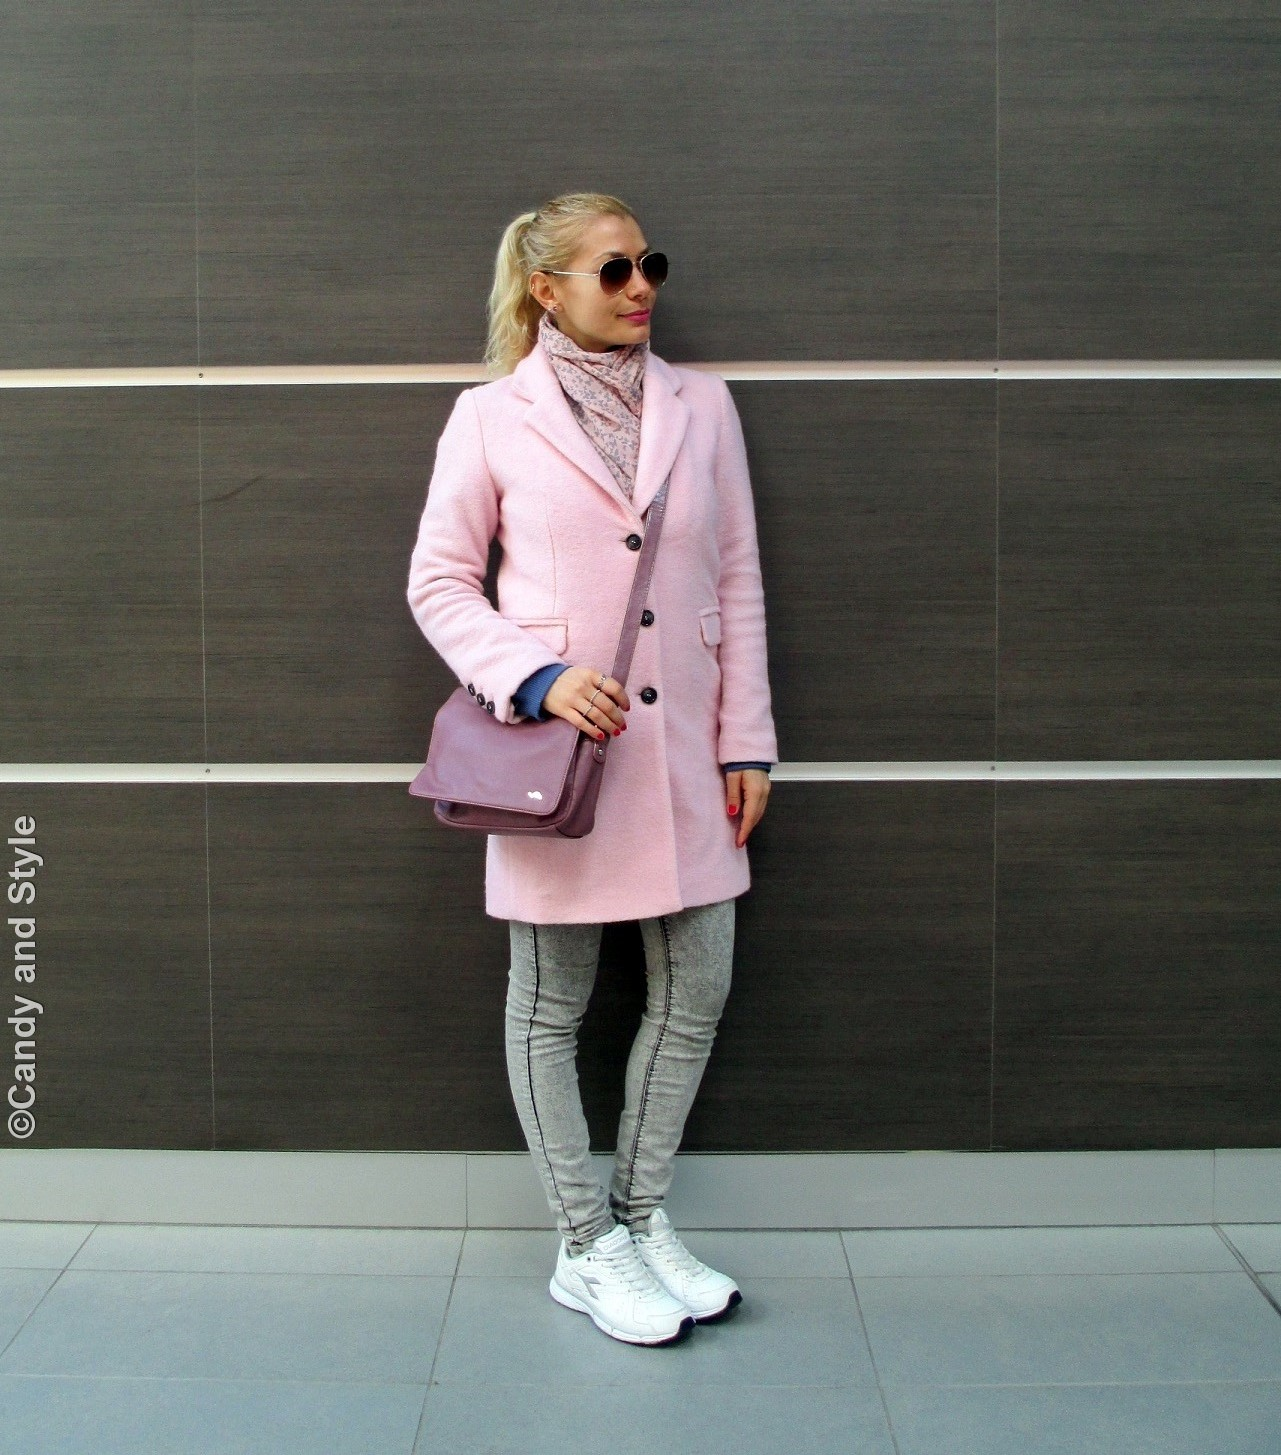 PinkCoat+BlueSweatshirt+Jeggings+WhiteTrainers+PinkBag+HighPonytail+RedNails+PinkLips - Lilli Candy and Style Fashion Blog